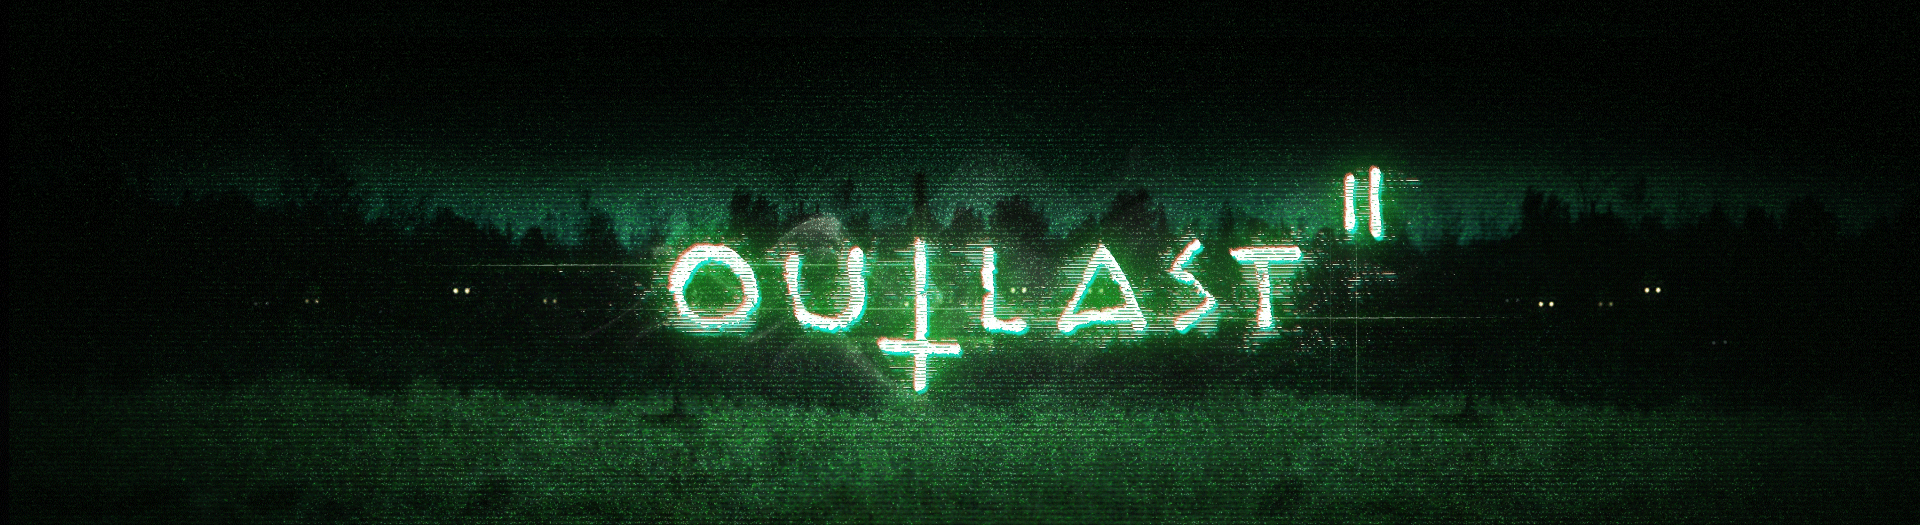 outlast-2-release-date-game-play-video-story-plot-everything-fans-must-know-about-upcoming-game.png